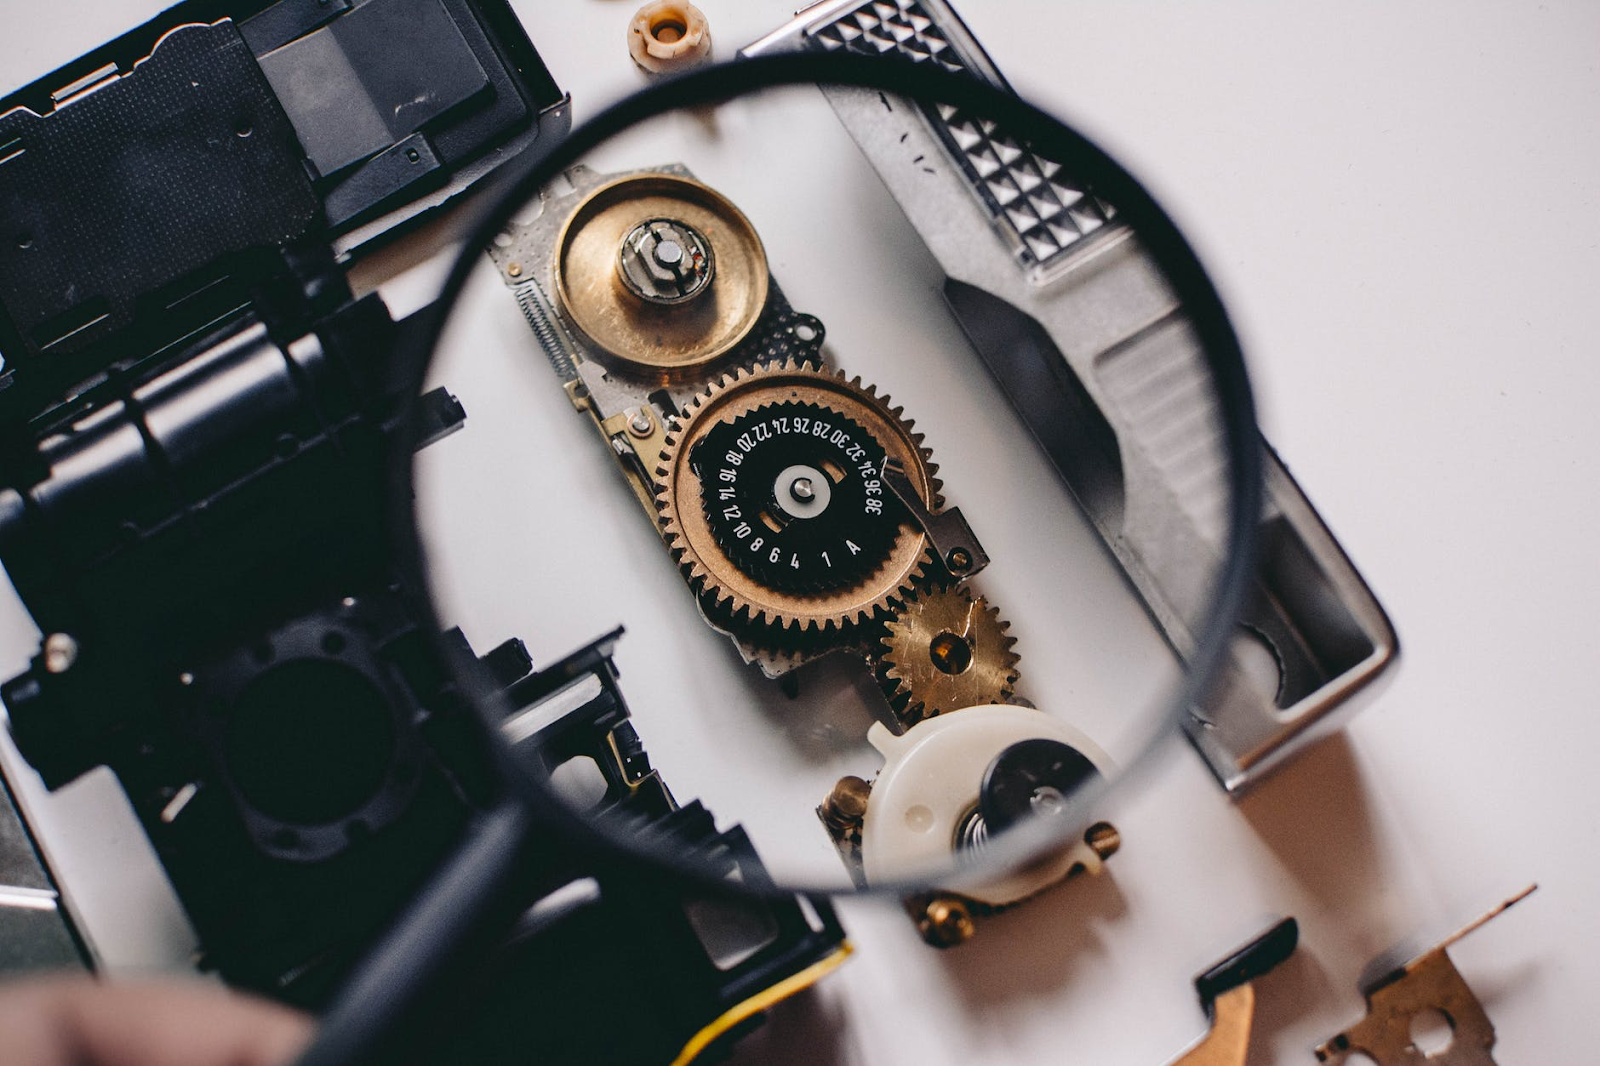 gears under a magnifying glass